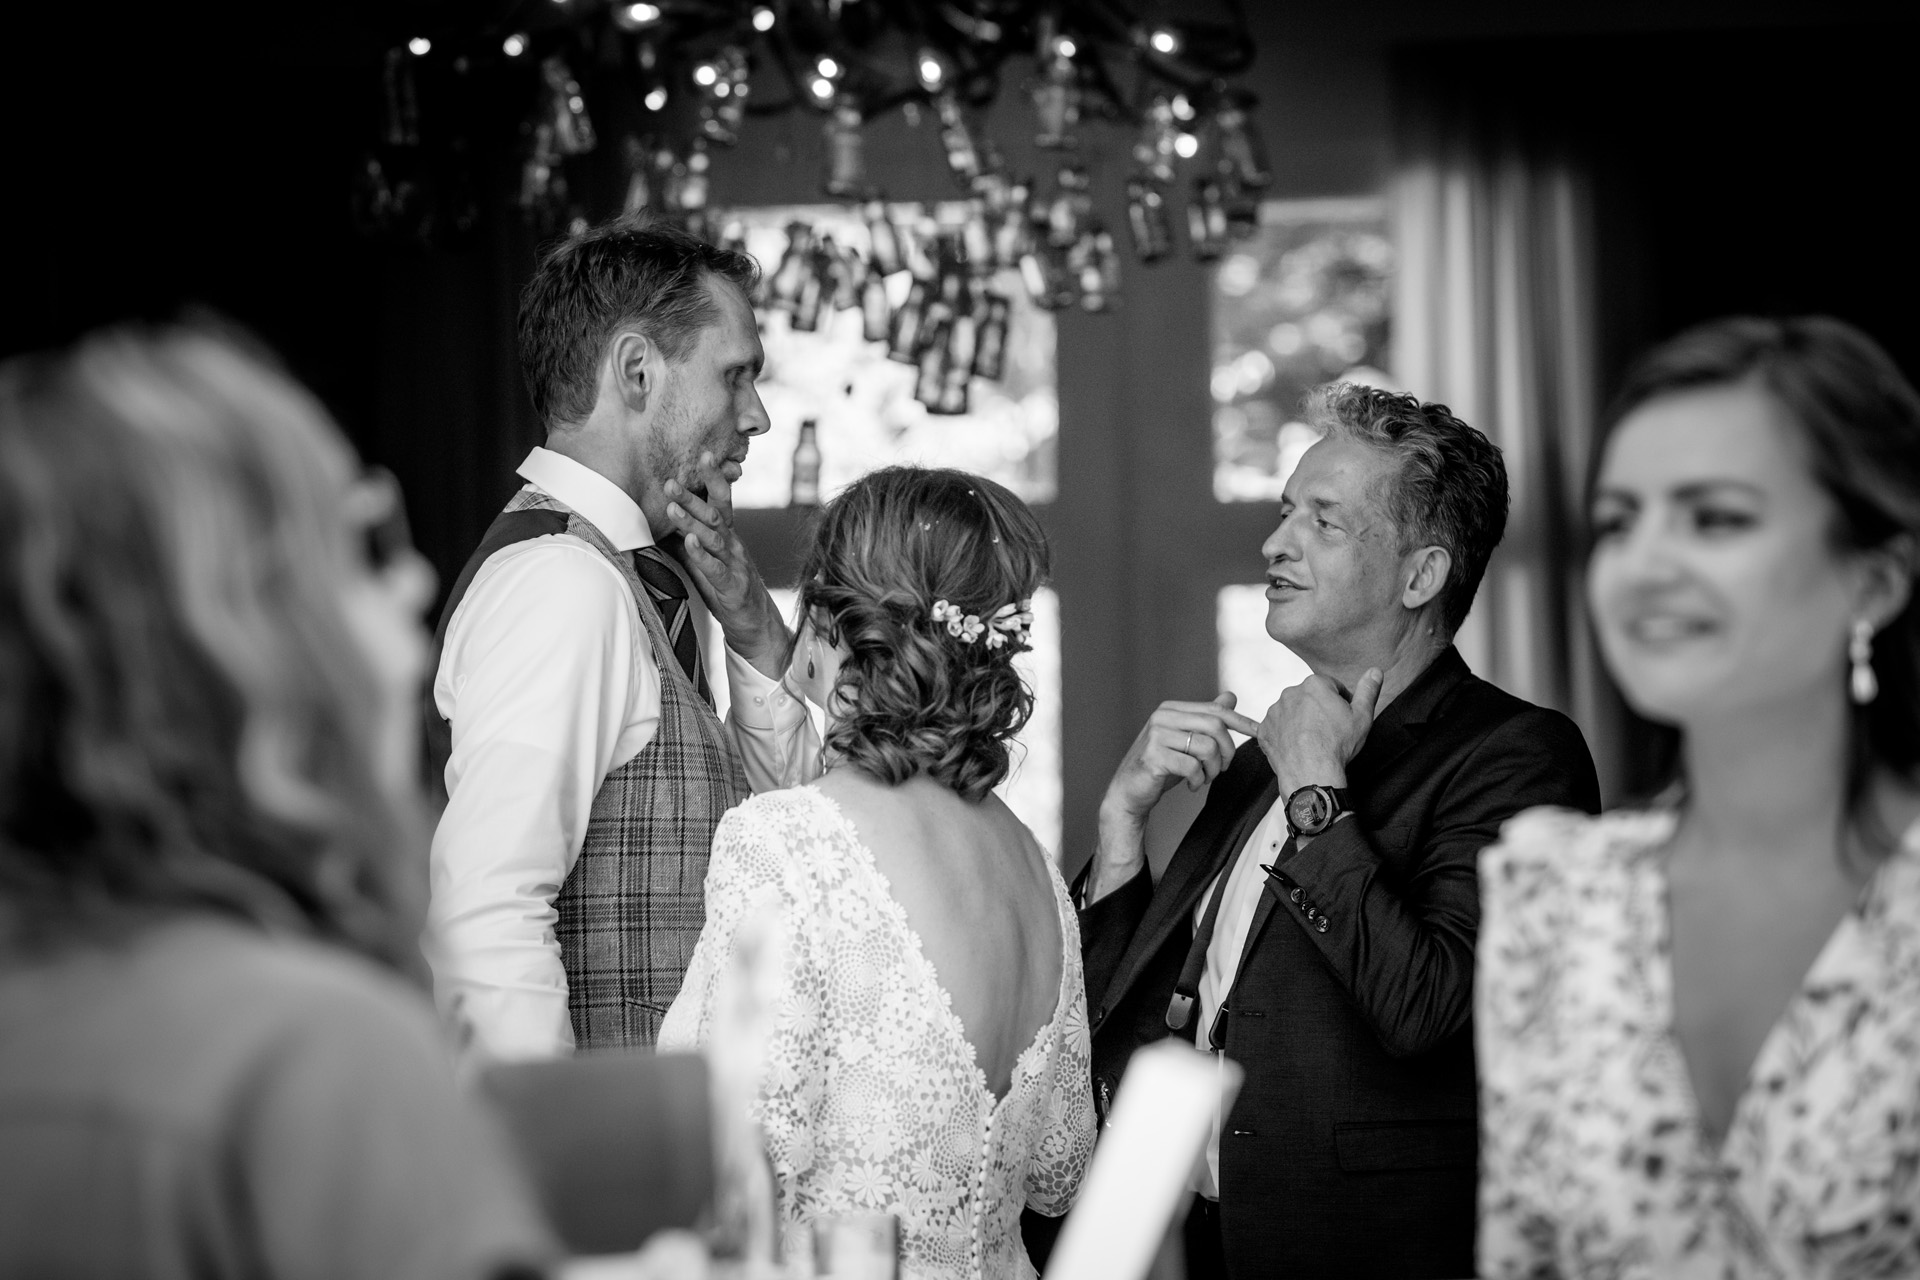 Netherlands Elopement Photographer | the groom gets some last-minute advice